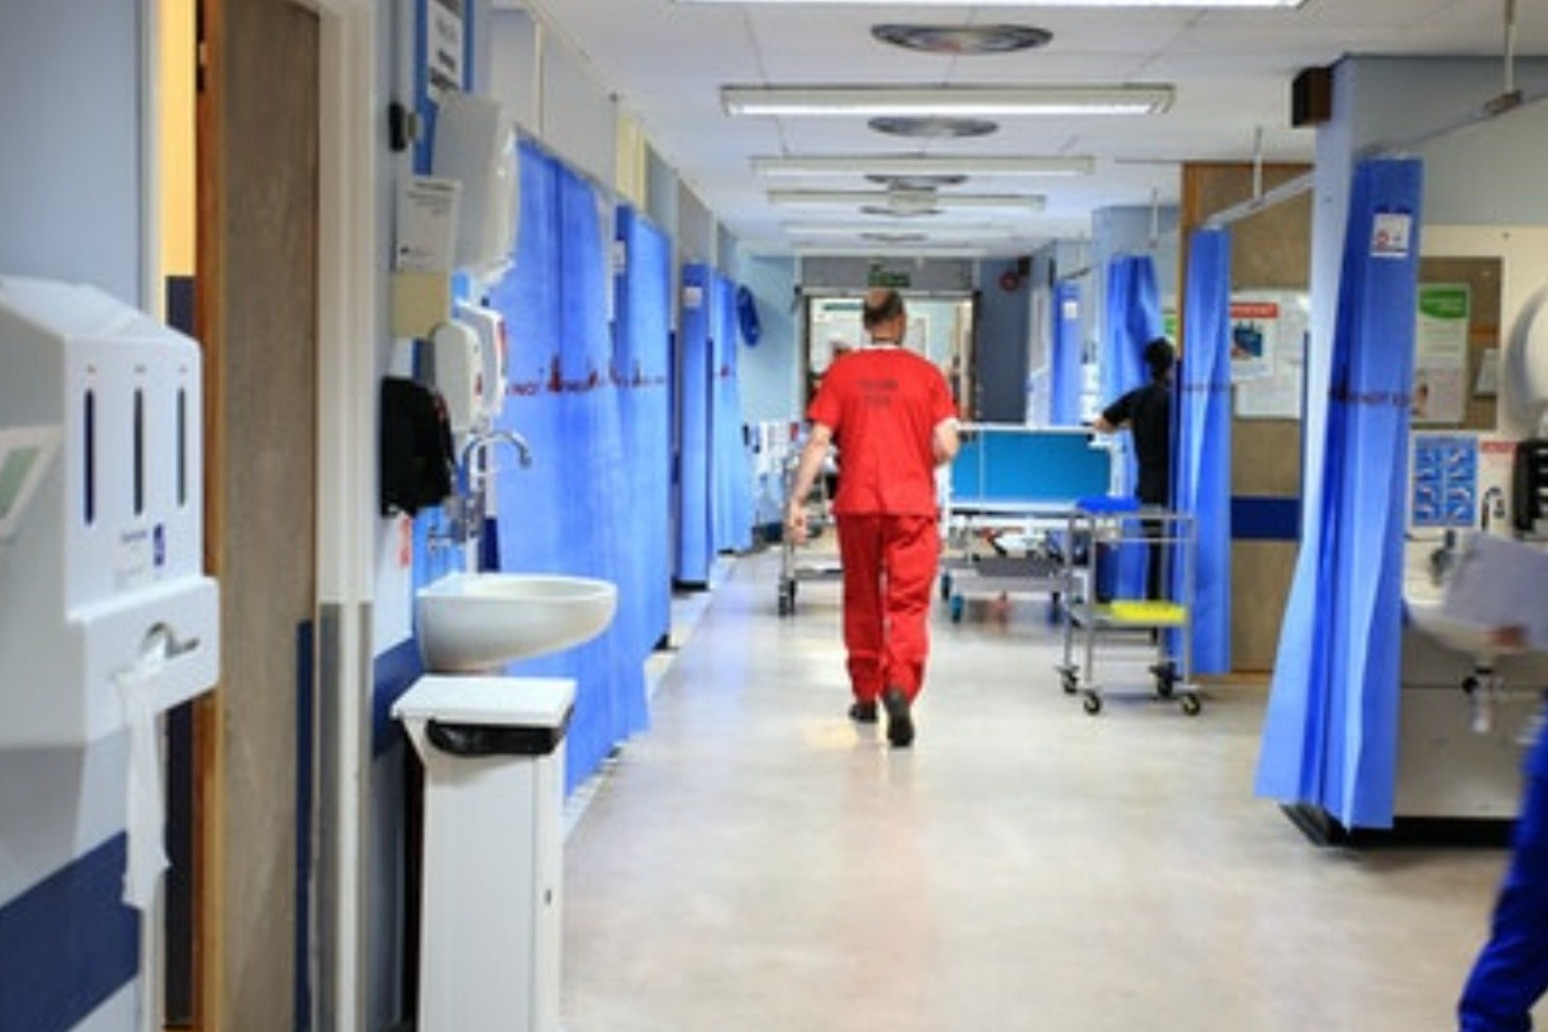 Hospitals could be treating 25,000 Covid-19 patients within weeks